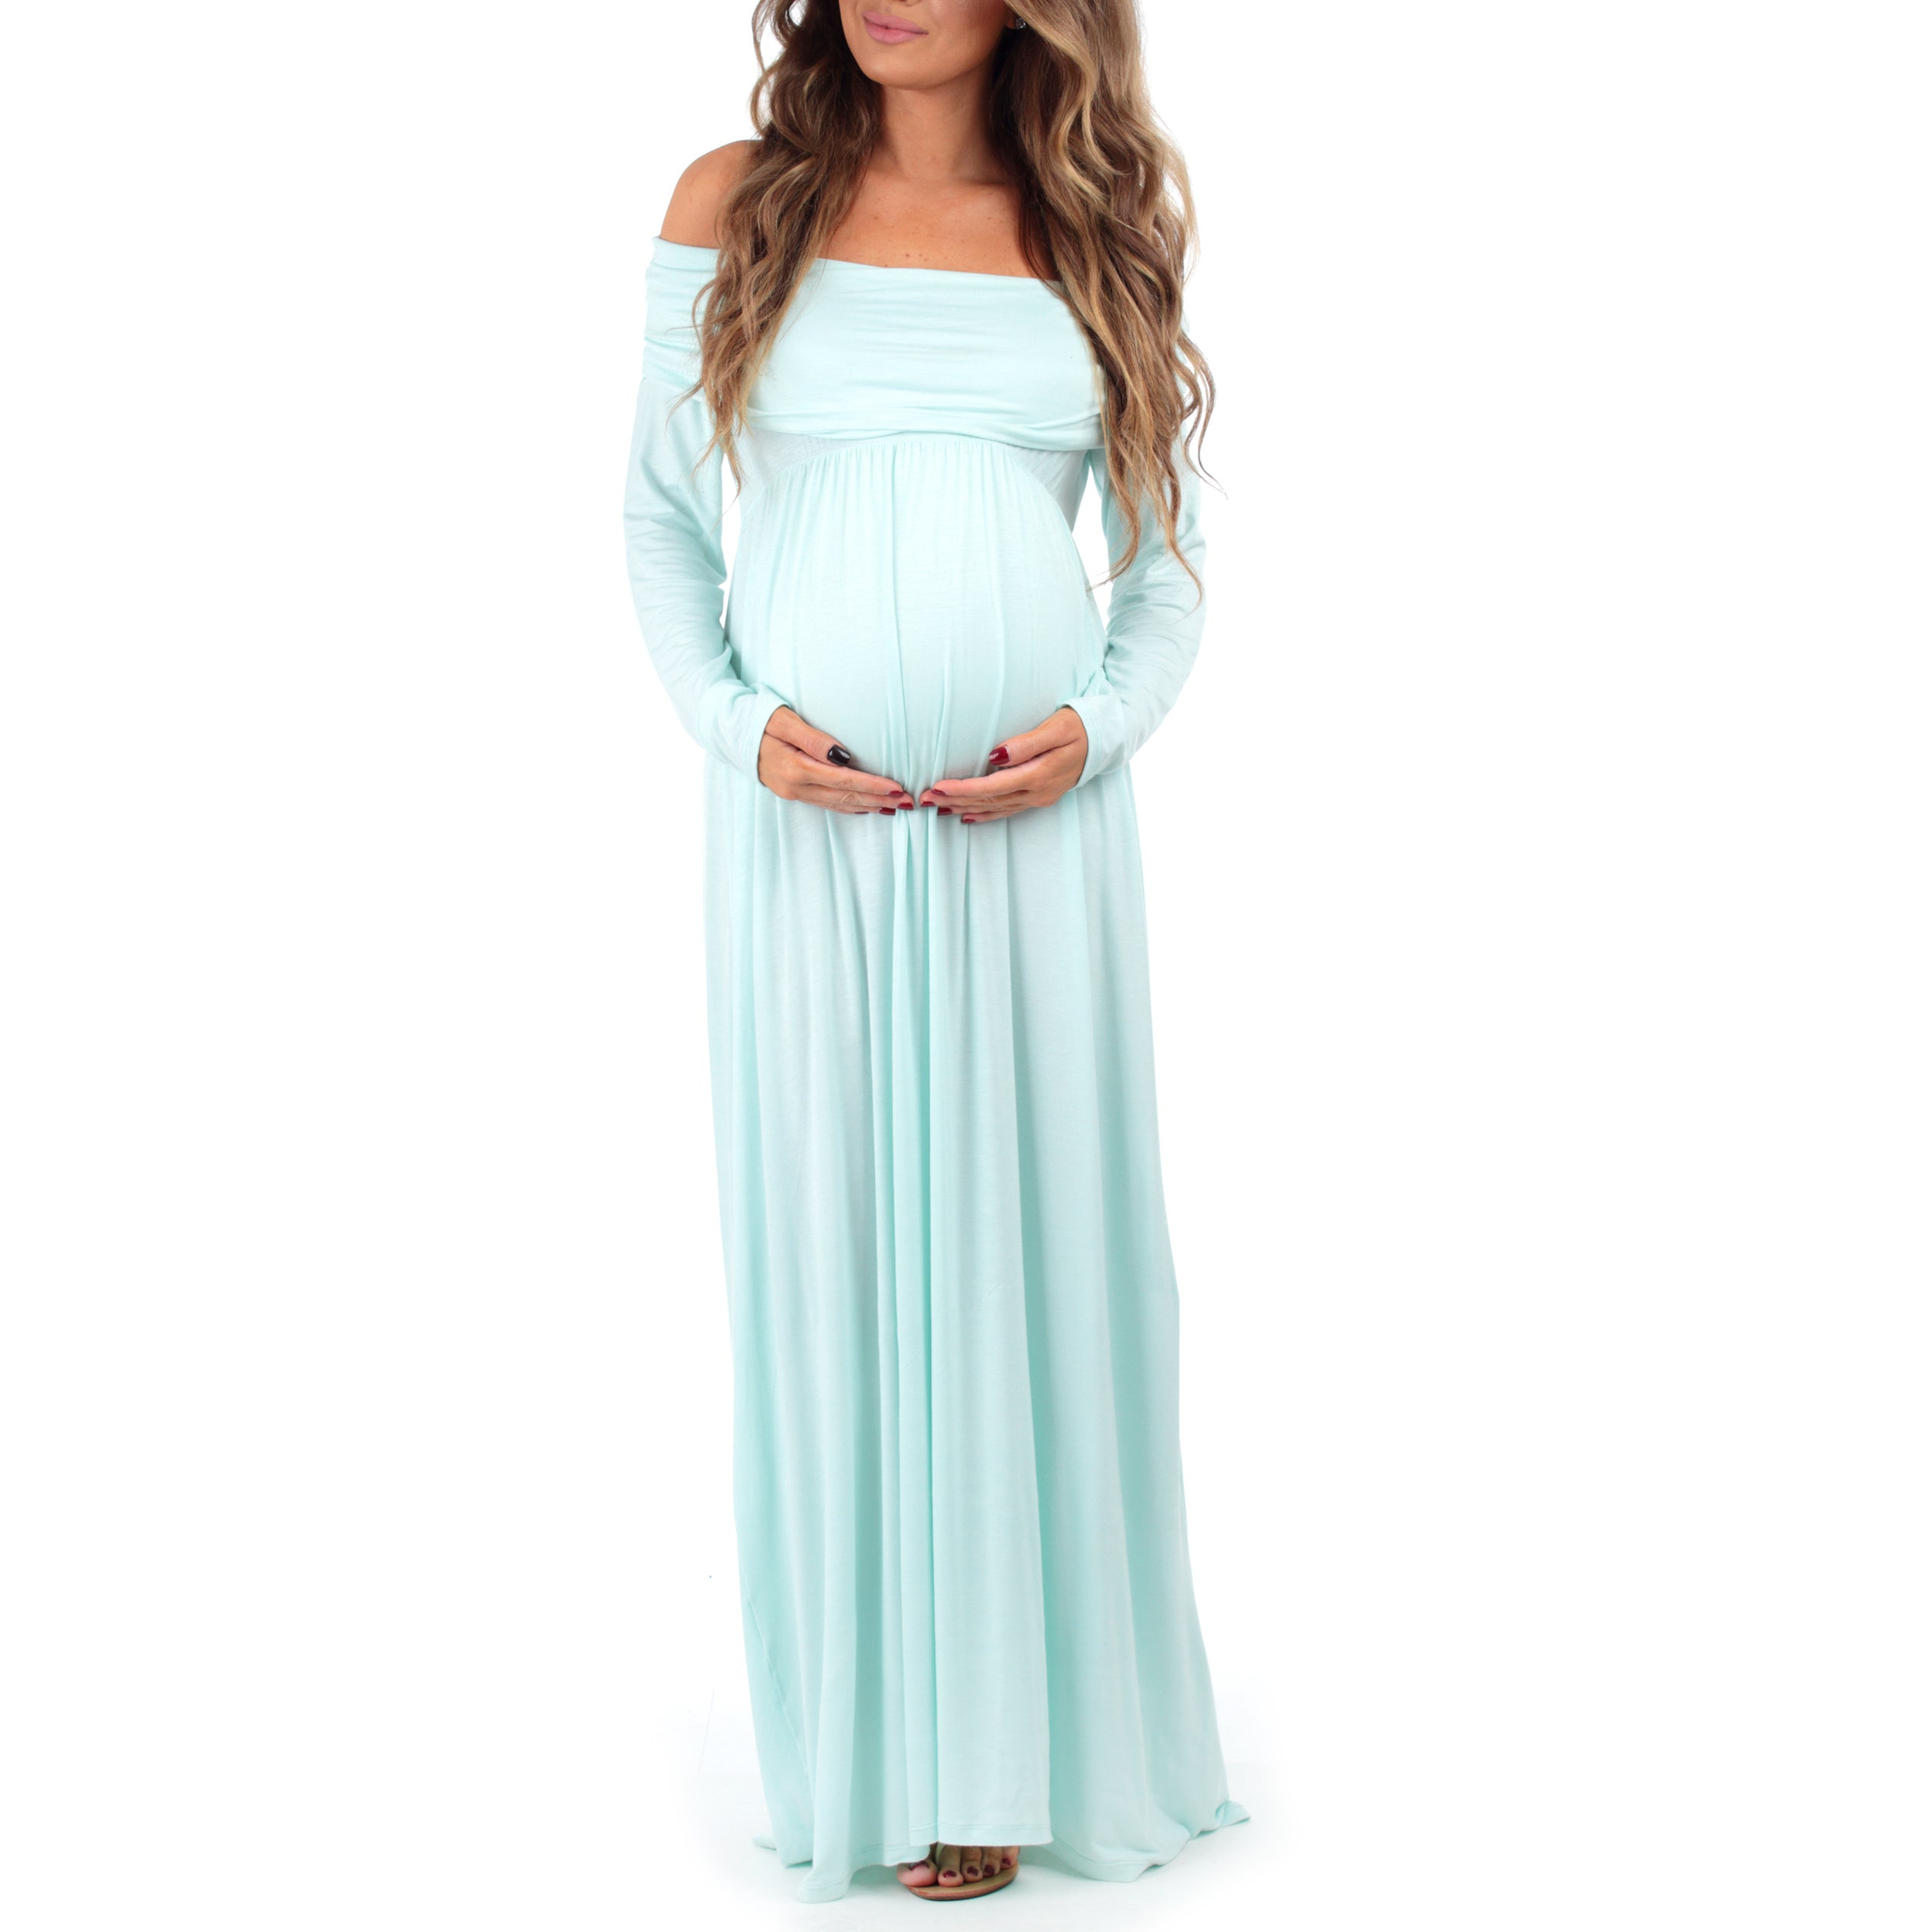 d93cffd205f Shop Mother Bee Women s Over-the-shoulder Ruched Maternity and Nursing Dress  - Free Shipping On Orders Over  45 - Overstock - 14681555